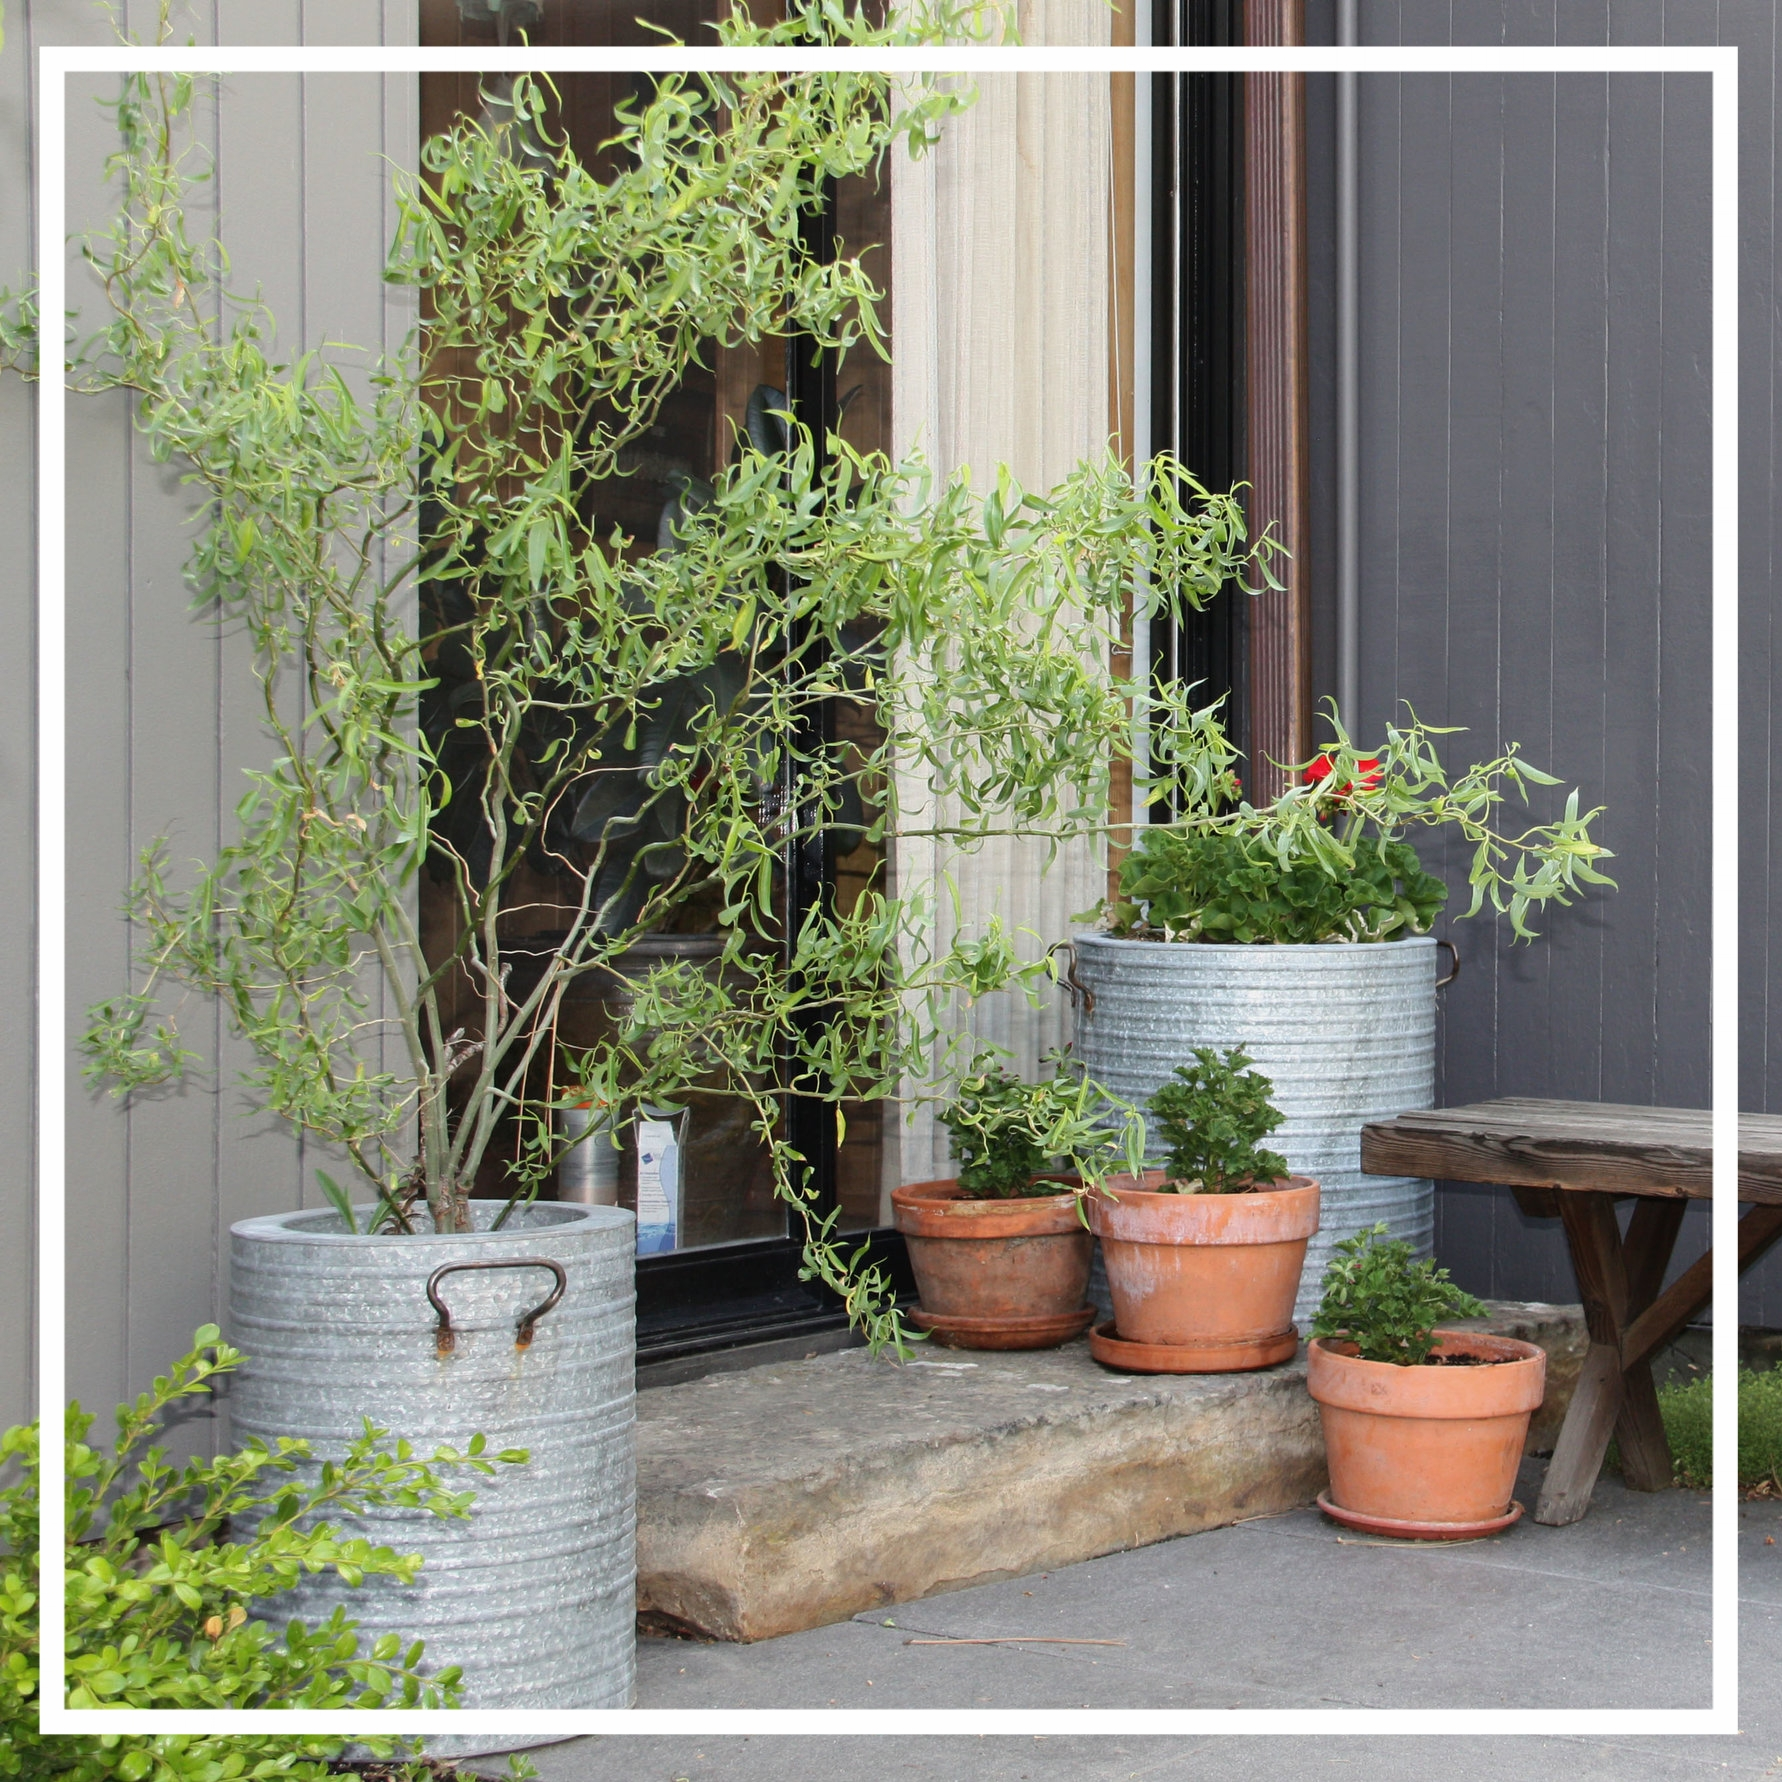 Corkscrew willow is an excellent choice for containers, because it tolerates heavy pruning